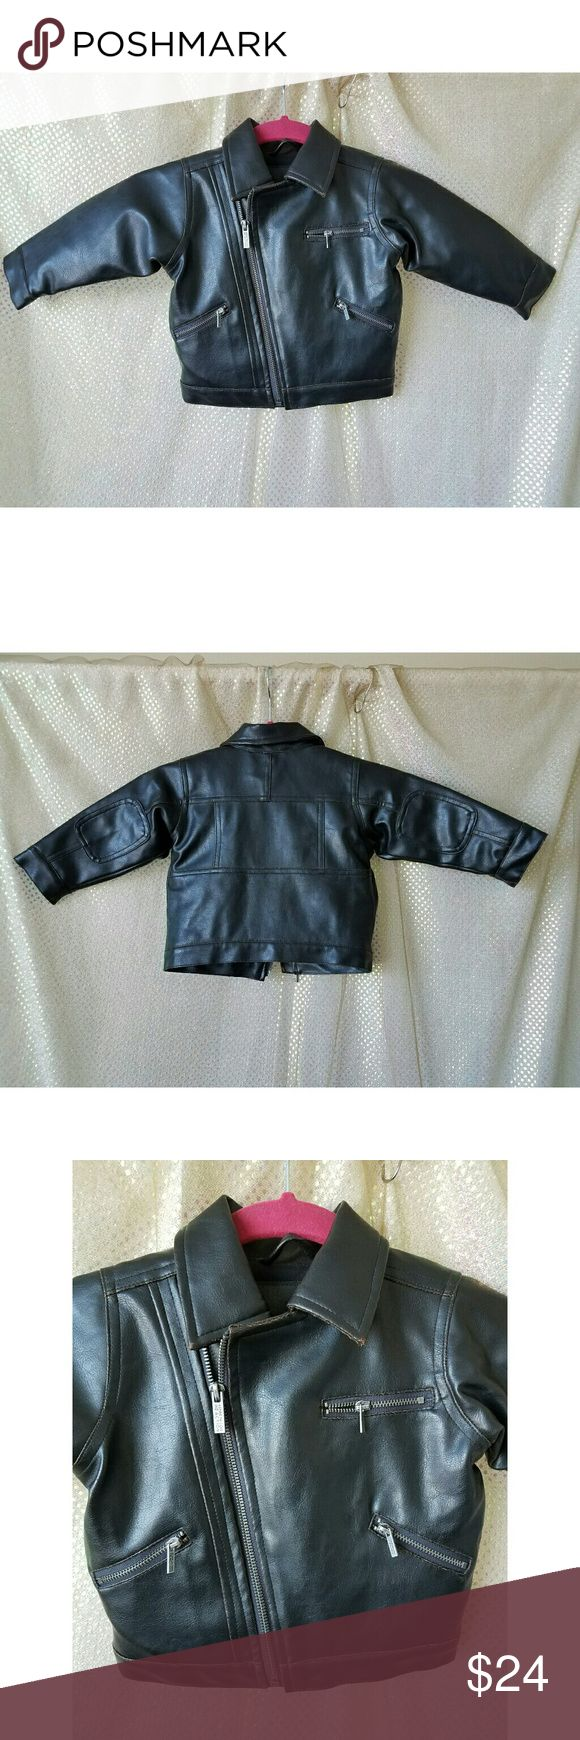 Boys leather jacket Kenneth Cole Reaction size 18m Kenneth Cole Reaction baby boys dark brown faux leather jacket, size 18 months. Your little guy will be styling in this jacket! Sideways zip. Wear/rubbing on leather throughout but tons of life left. Refer to pic #4 Kenneth Cole Reaction Jackets & Coats